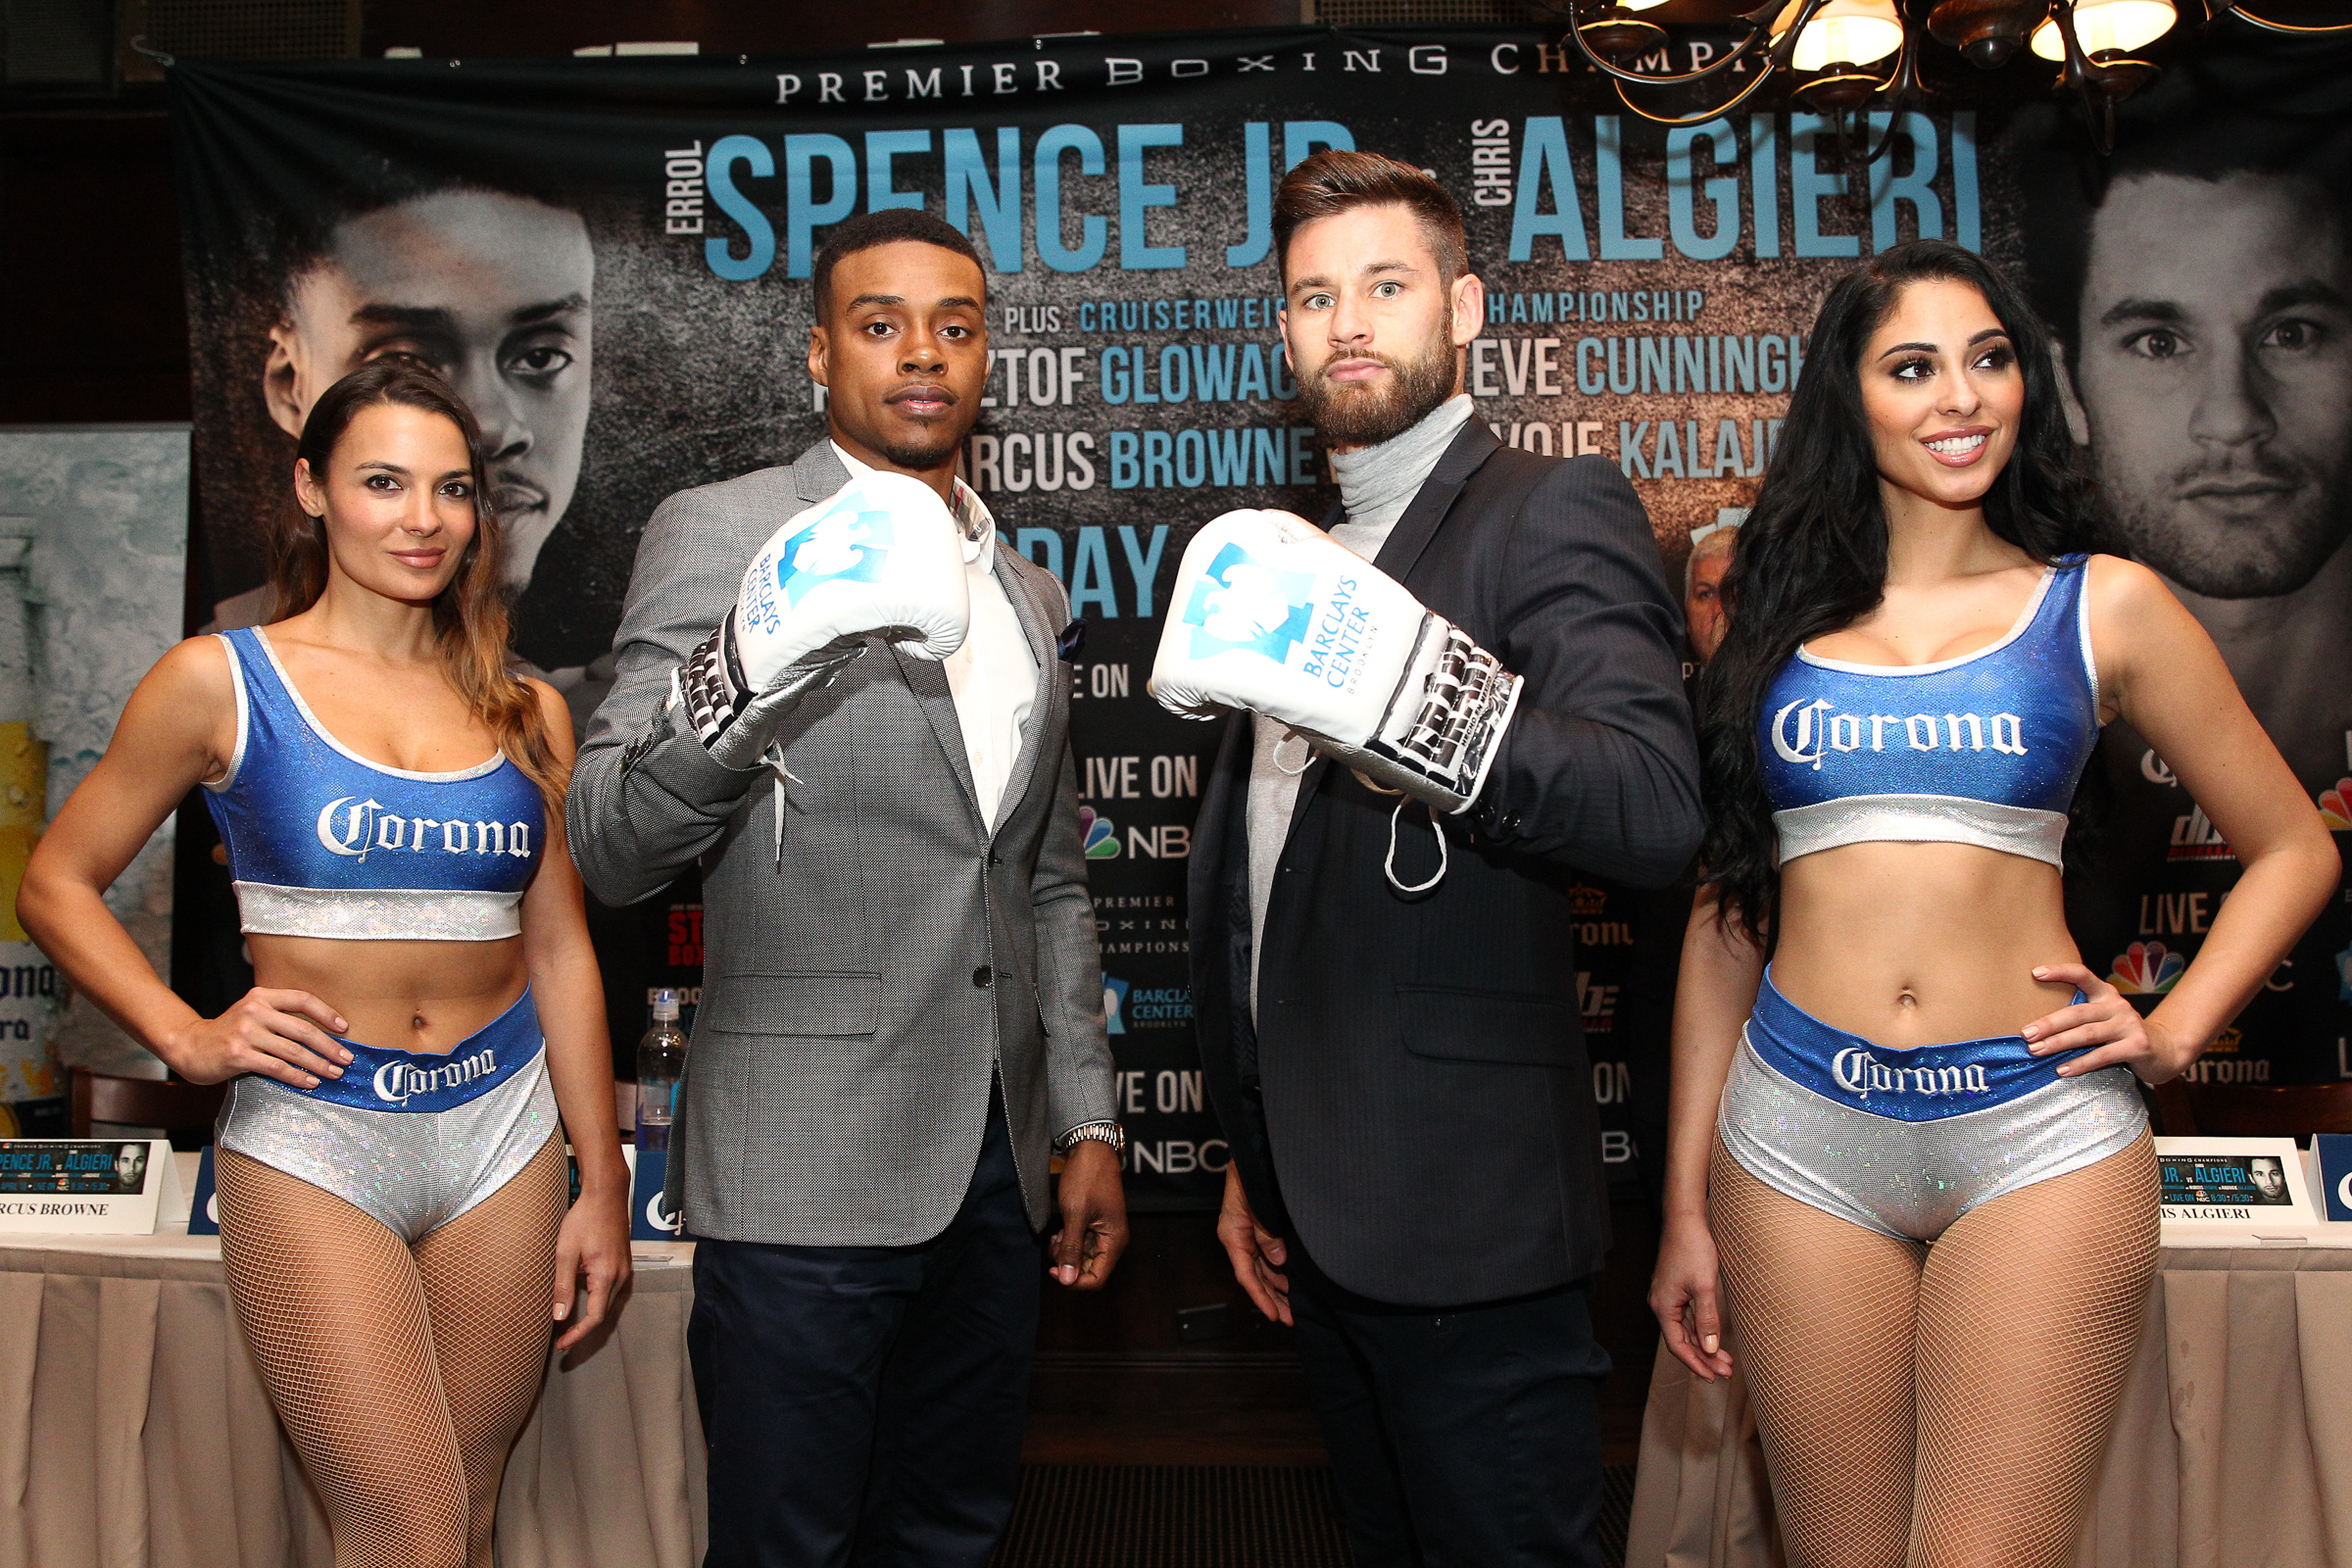 Greenlawn native Chris Algieri, right, will face off against up-and-coming boxing prospect Errol Spence Jr., left, this Saturday at the Barclays Center in Brooklyn.    Photo/Edward Diller/Premier Boxing Champions